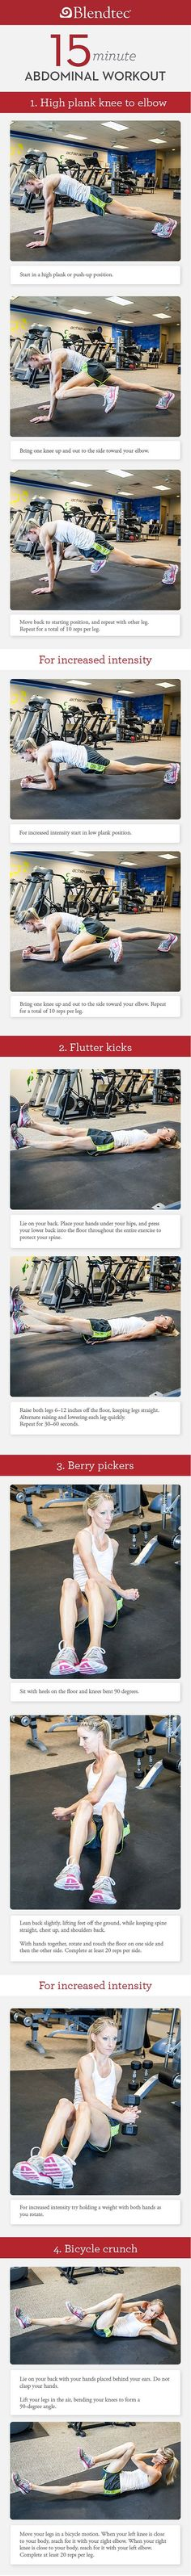 15-Minute Good Morning Workouts, Abs